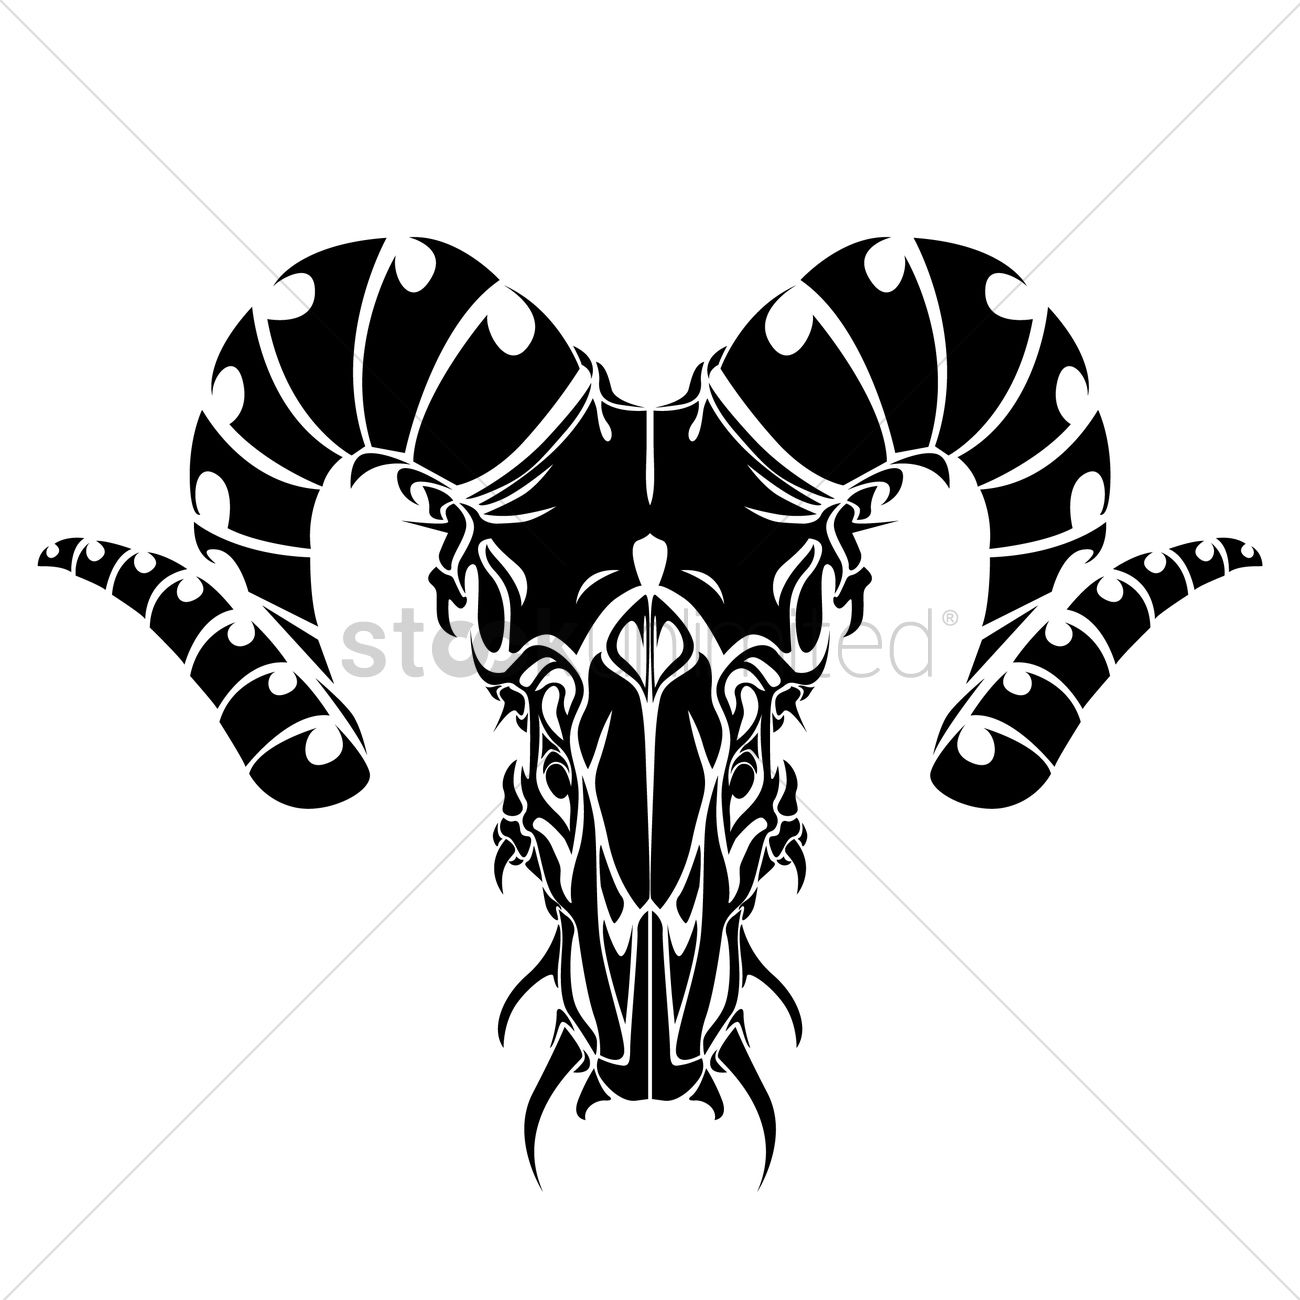 bull horns tattoo vector image 1463212 stockunlimited. Black Bedroom Furniture Sets. Home Design Ideas